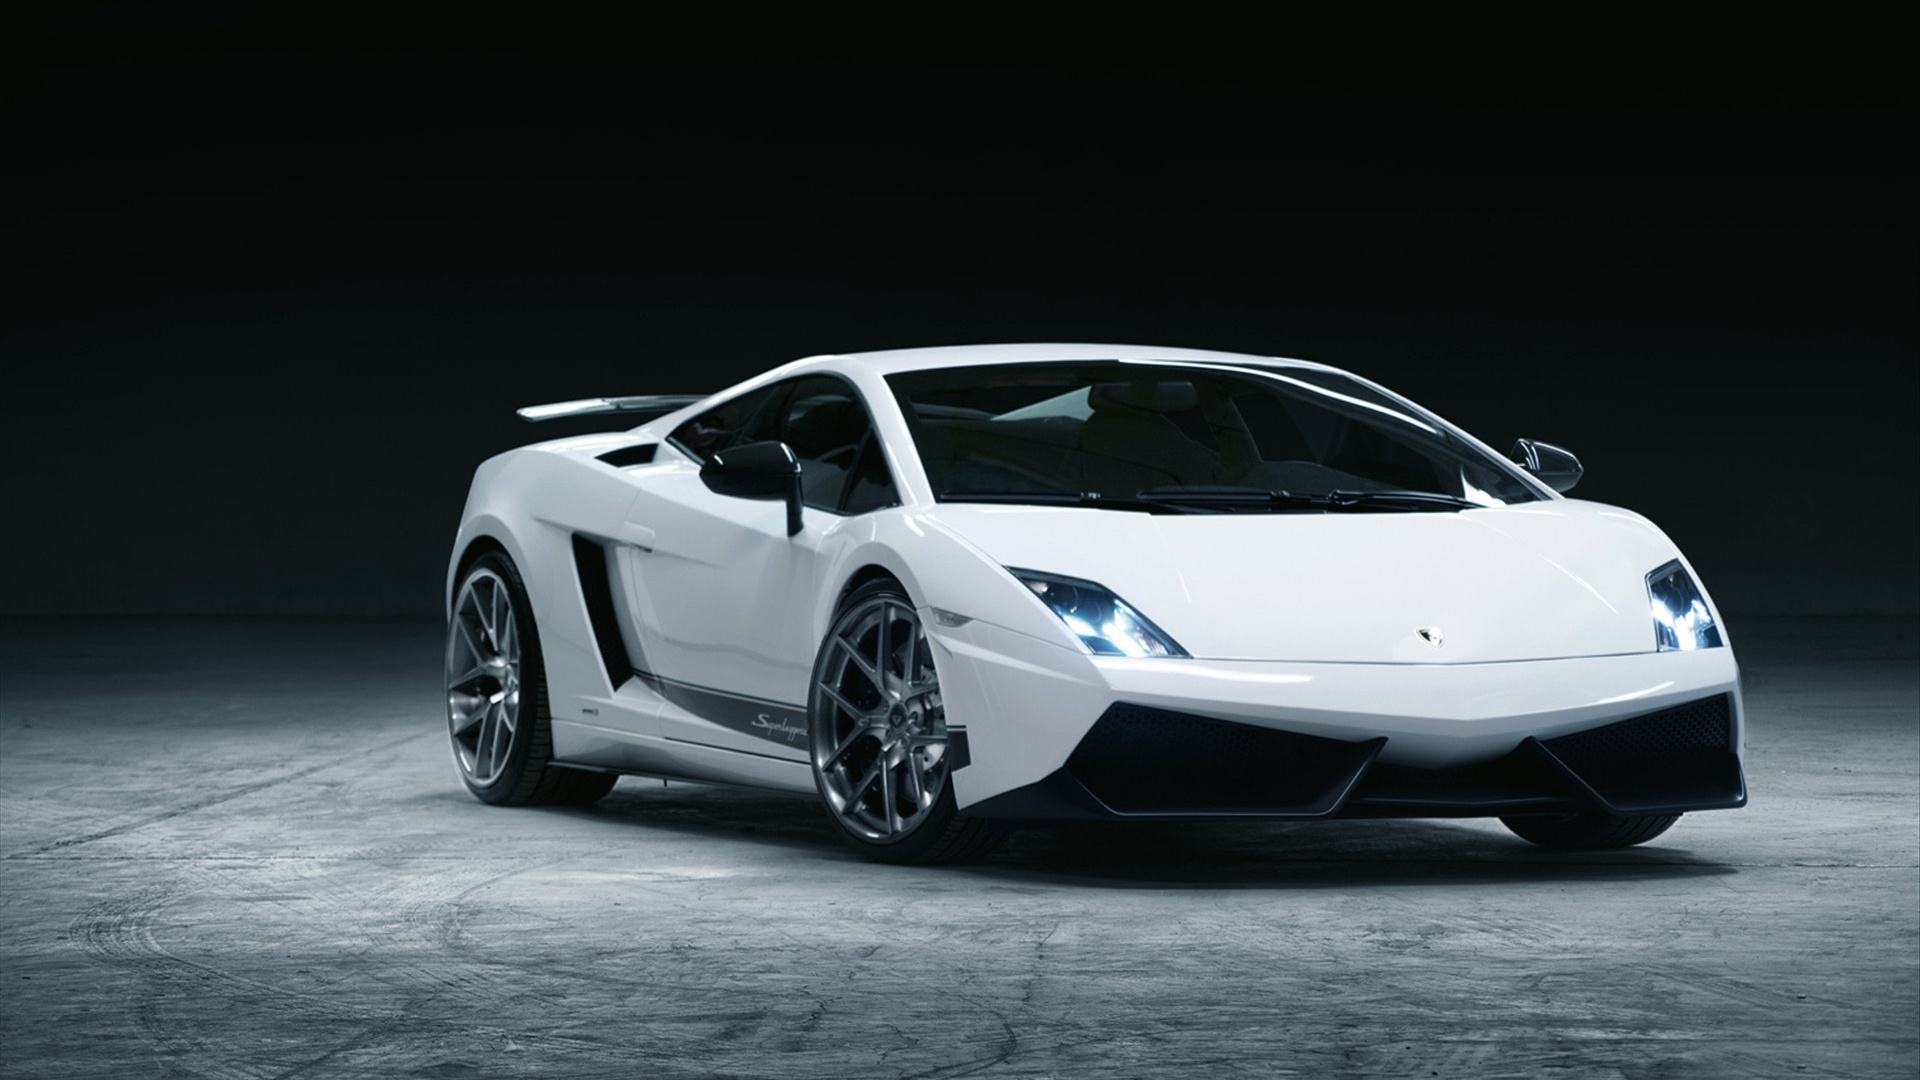 white-cars-hd-wallpapers-free-download.jpg